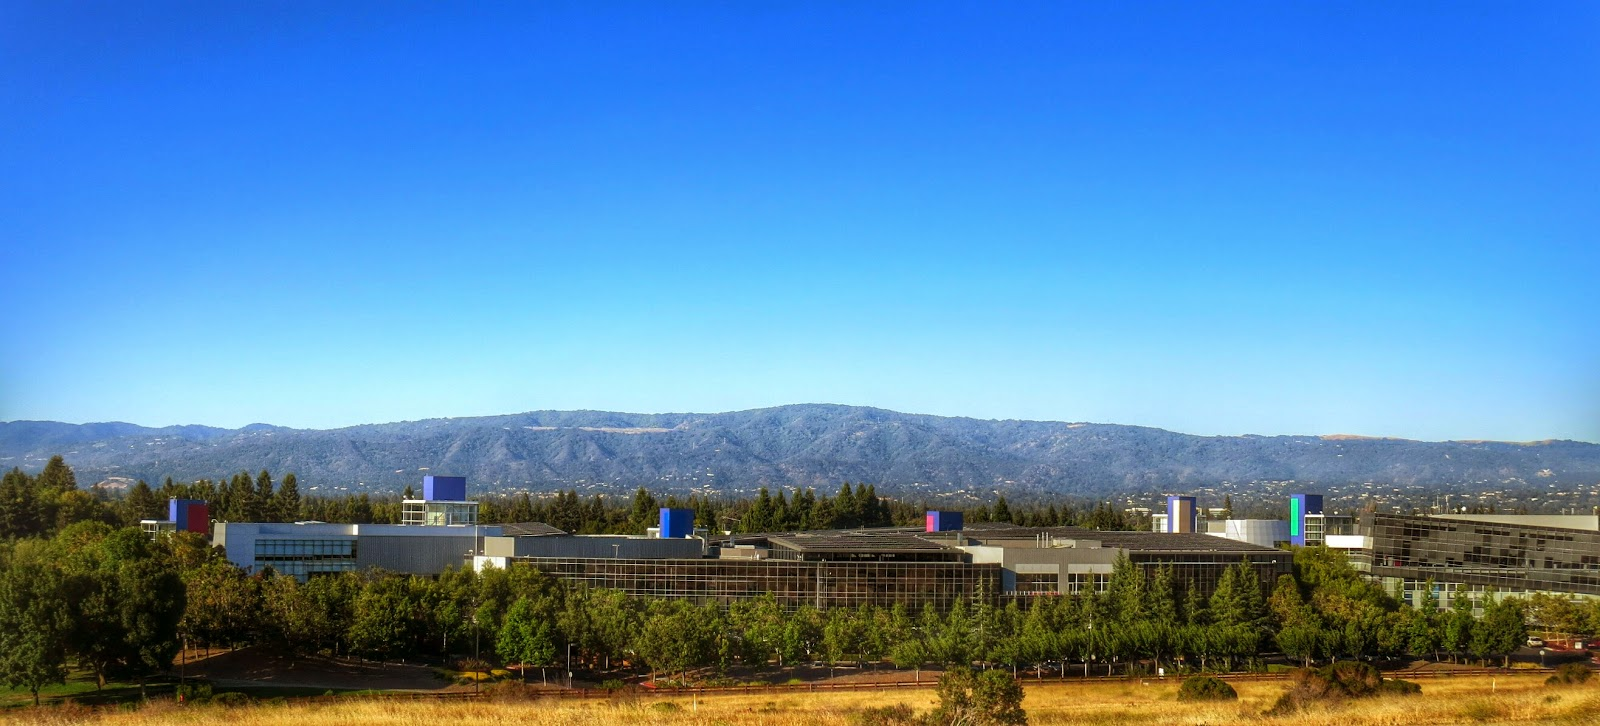 View of the Googleplex from Vista Slope in Mountain View, California